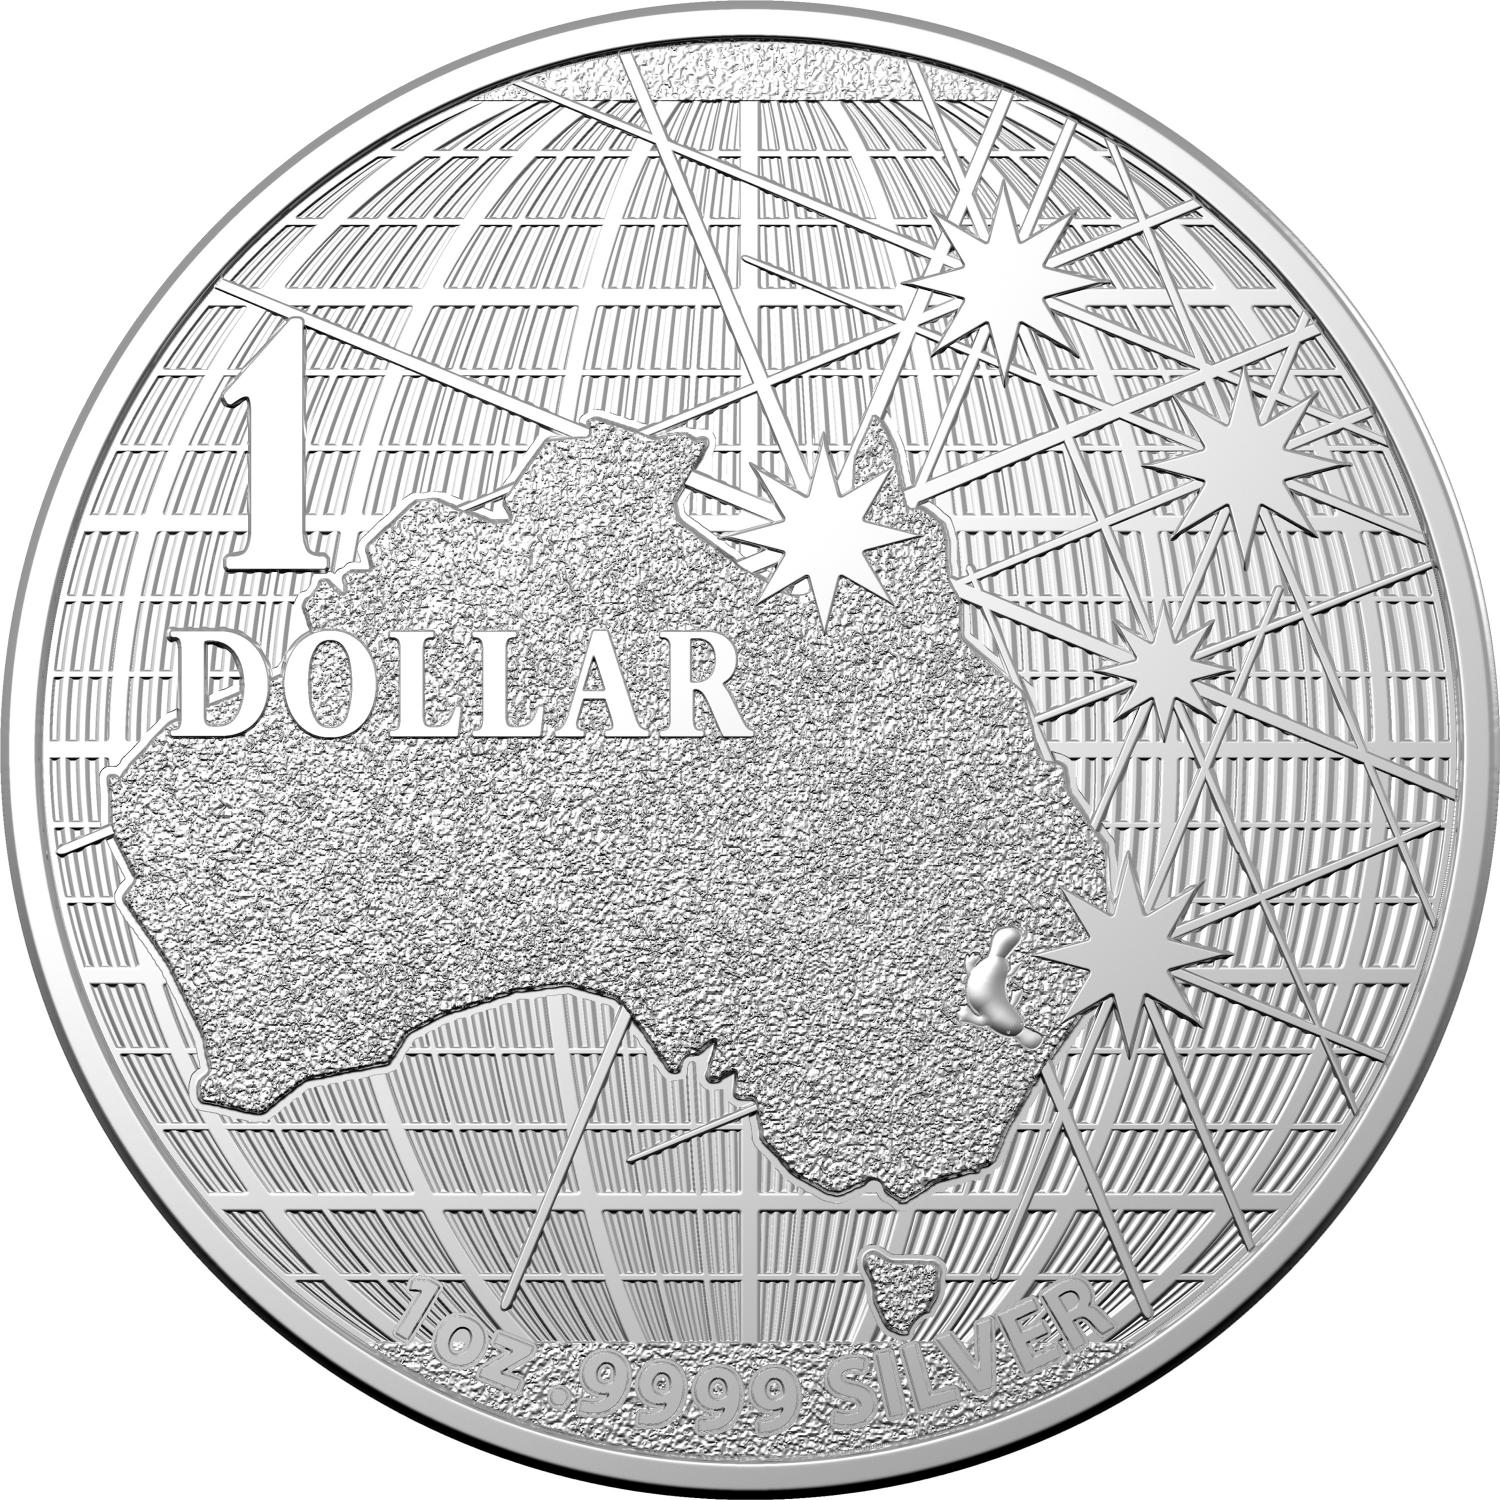 Thumbnail for 2021 $1 1oz Silver Investment Coin - Beneath the Southern Skies Platypus Silhouette